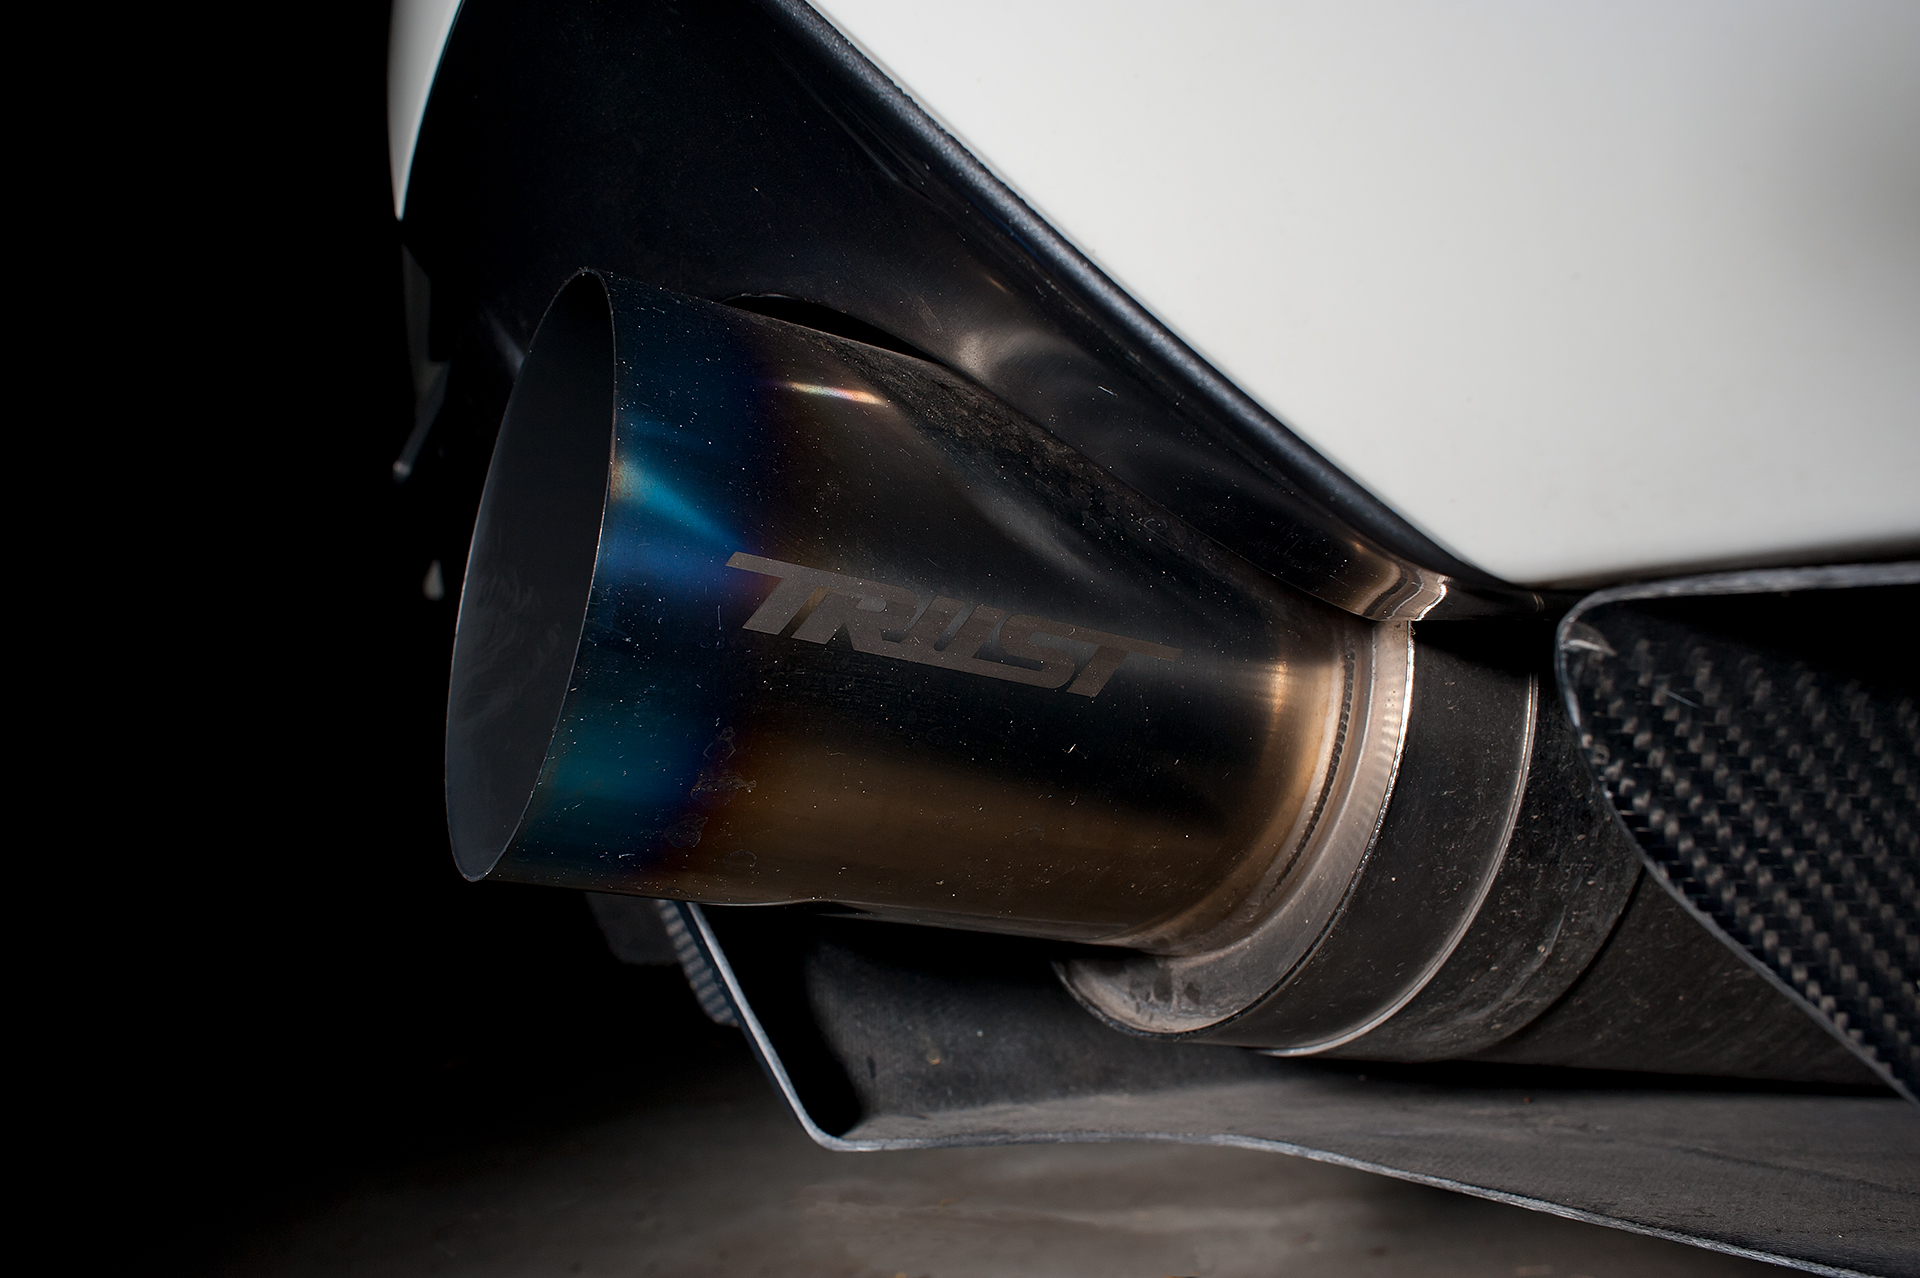 Exhaust shot of White Mitsubishi Evo IX with Varis body kit